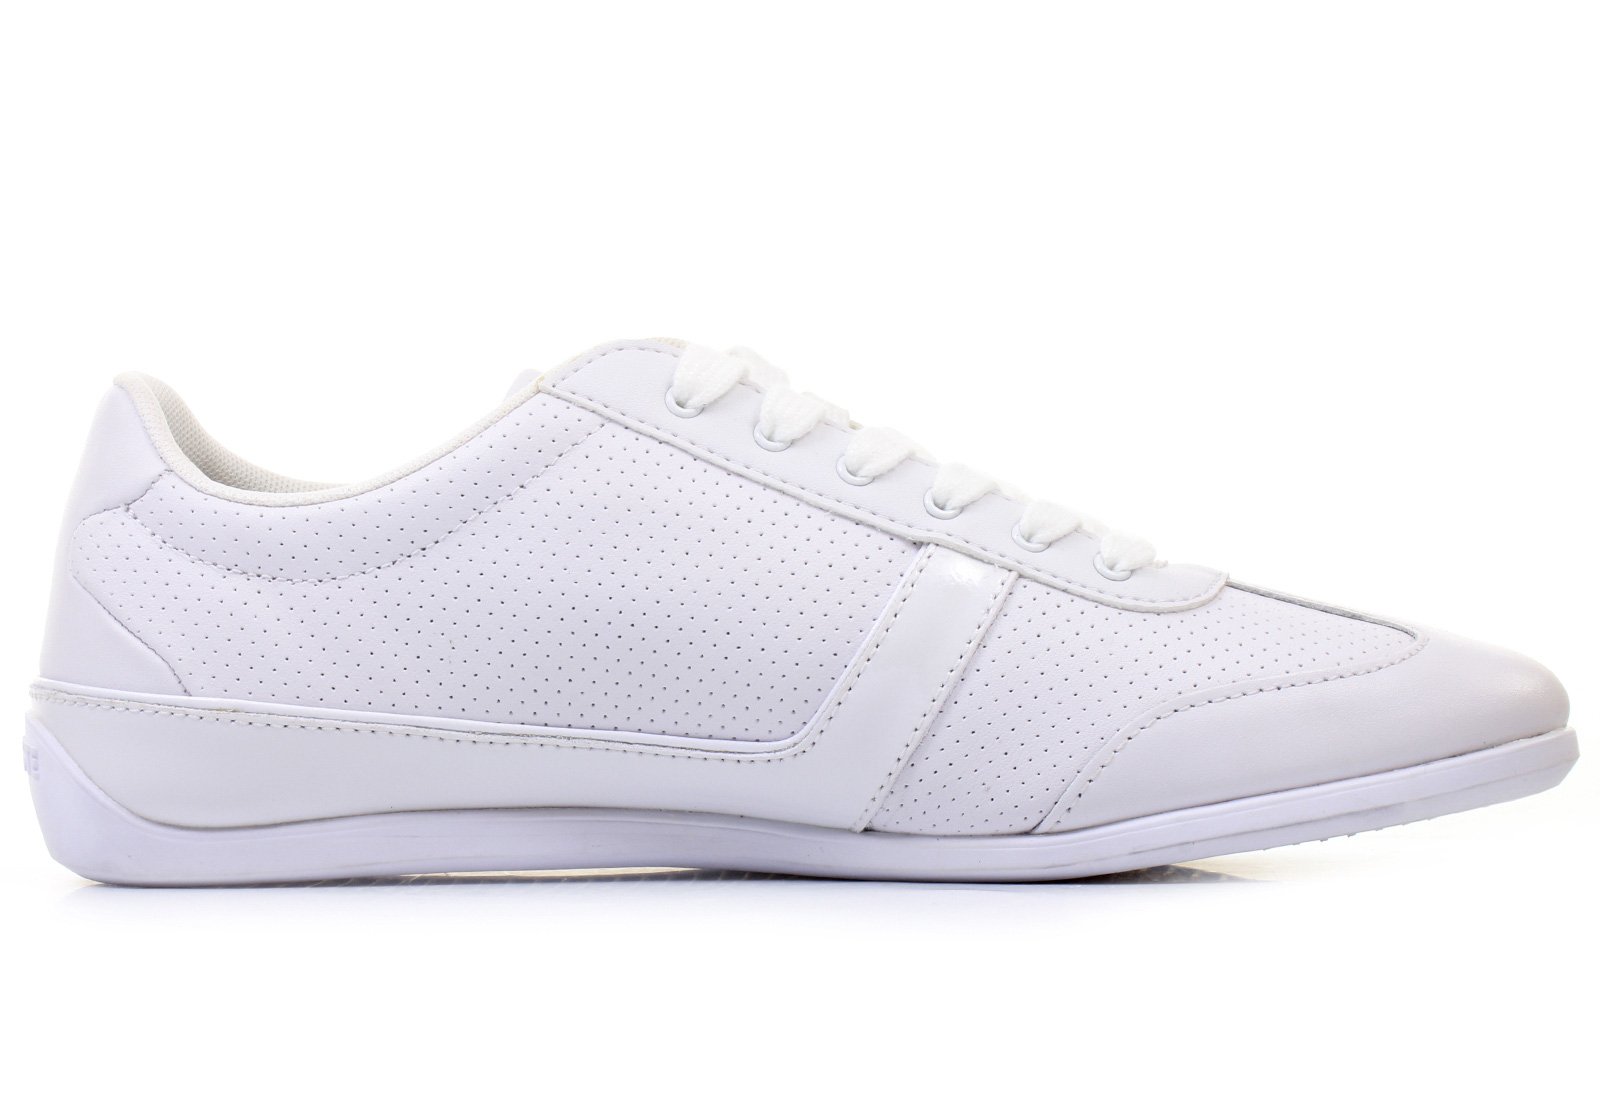 lacoste shoes missano sport 143spw1111 21g